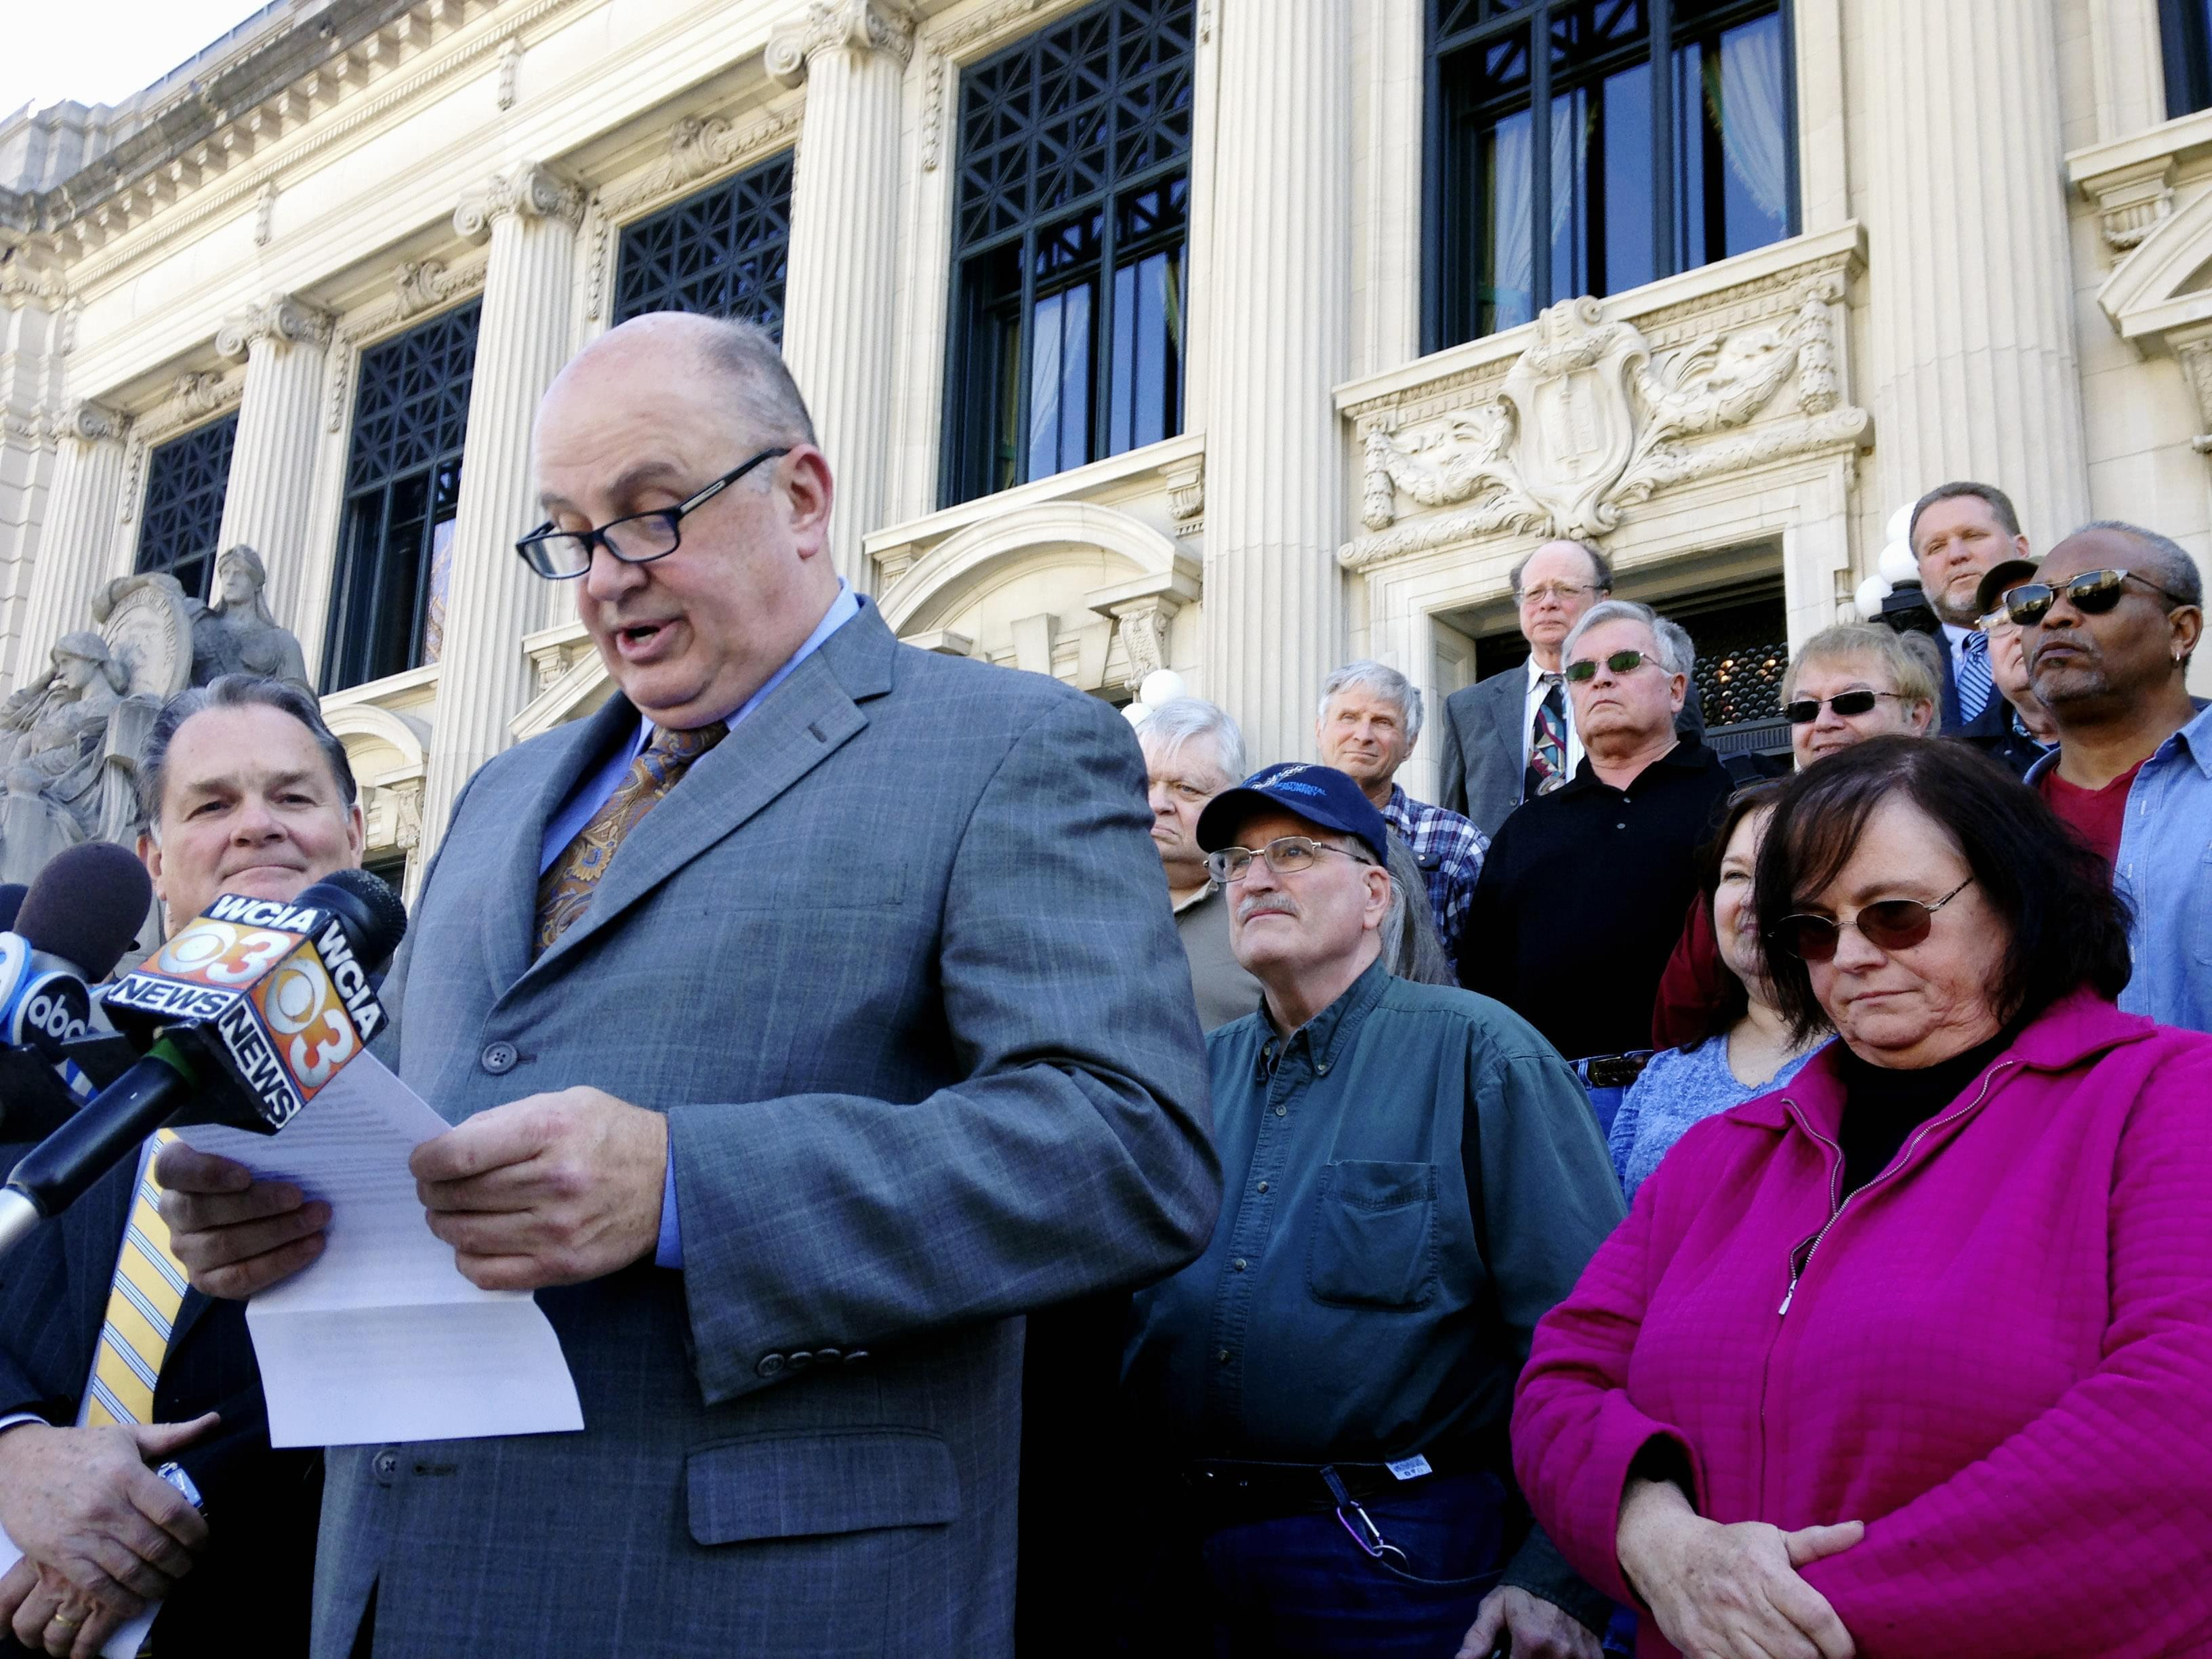 Illinois AFL-CIO President Michael Carrigan is joined by state workers and retirees outside the Illinois Supreme Court in Springfield, Ill., Wednesday, March 11, 2015, as he addresses the media following oral arguments in a lawsuit over a state pensi